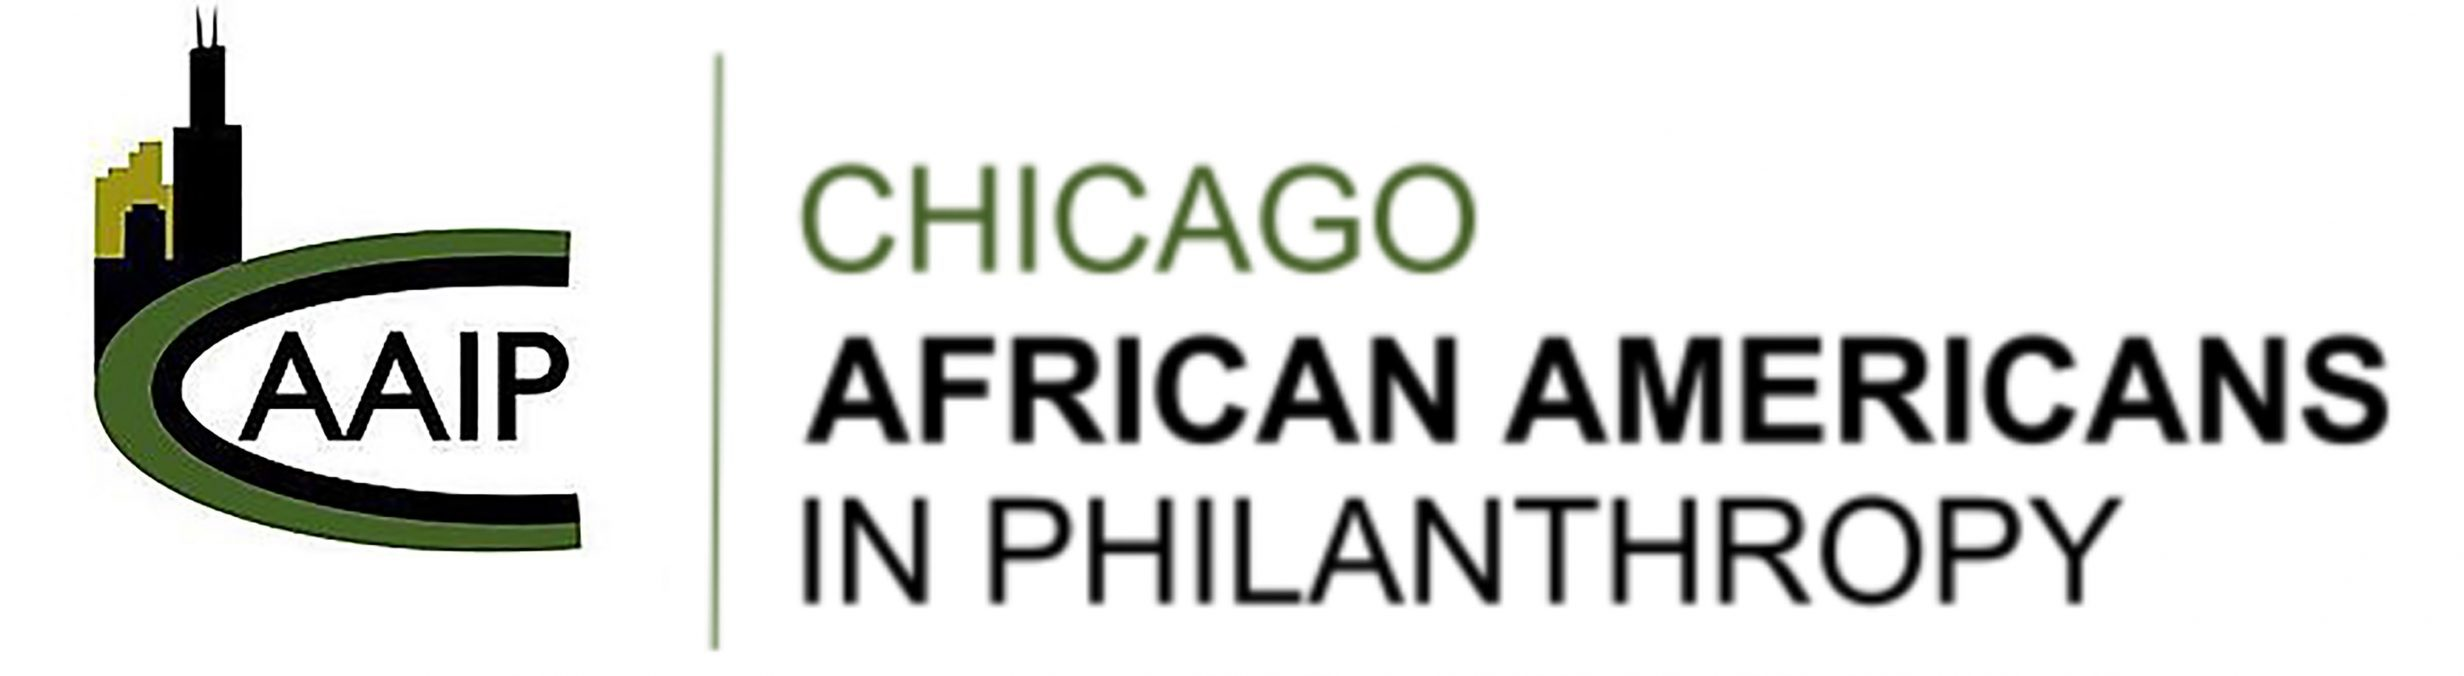 Chicago African Americans in Philanthropy (CAAIP)